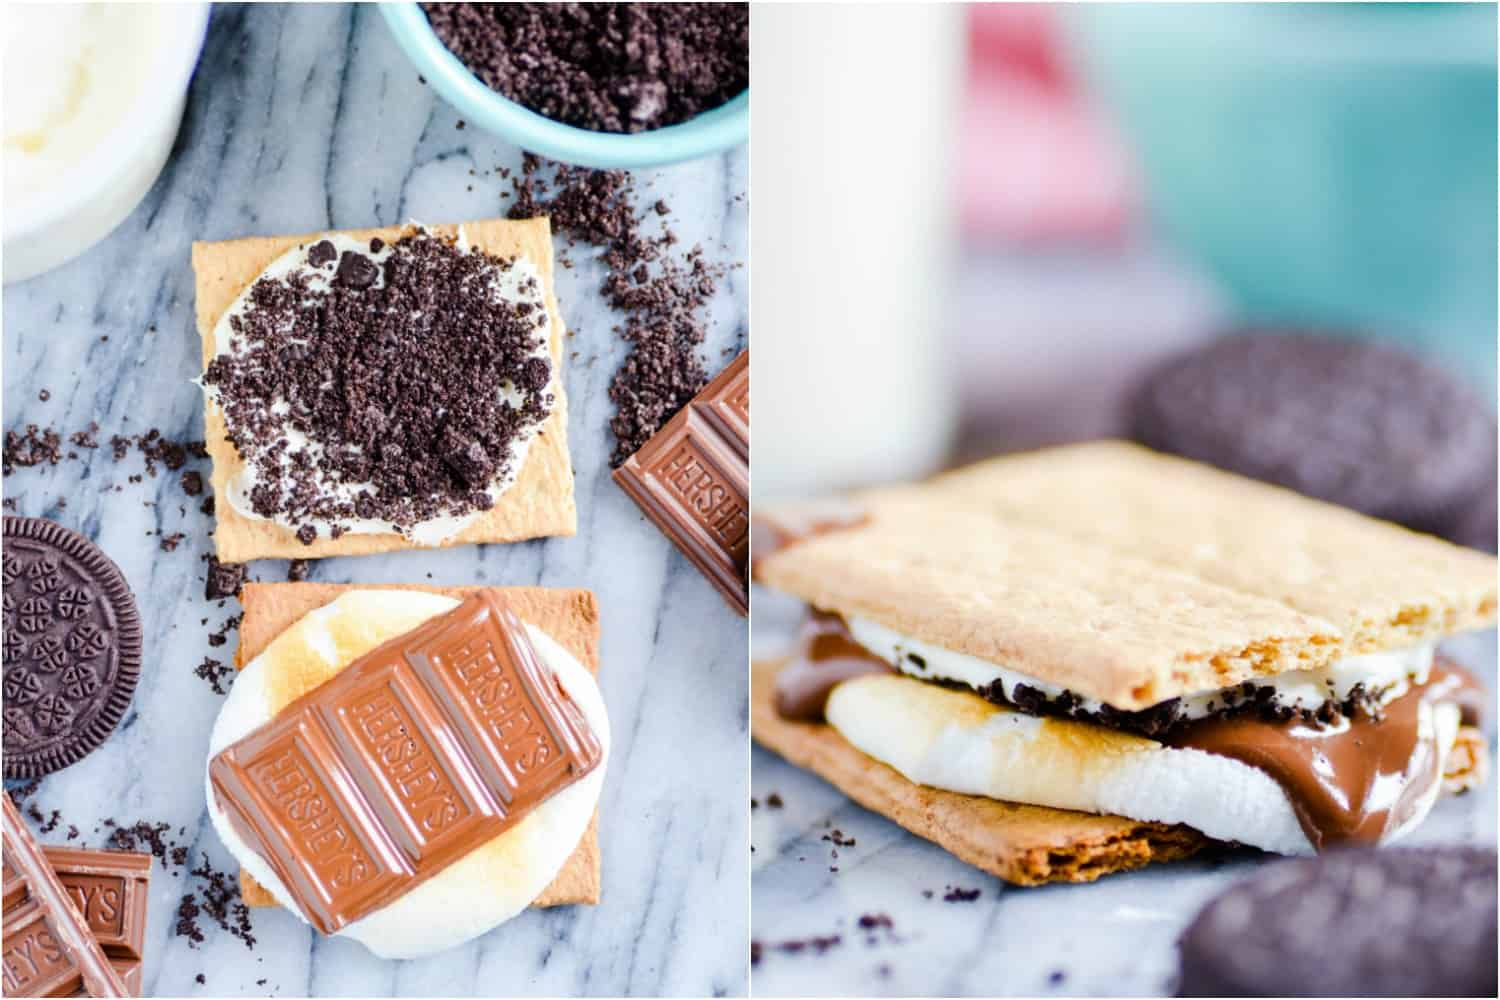 With flavors like Cookies & Cream, Chocolate Covered Strawberry, and Fluffer Nutter, I think your'll agree that any summer get-together is the perfect time for these indoor Gourmet S'mores!